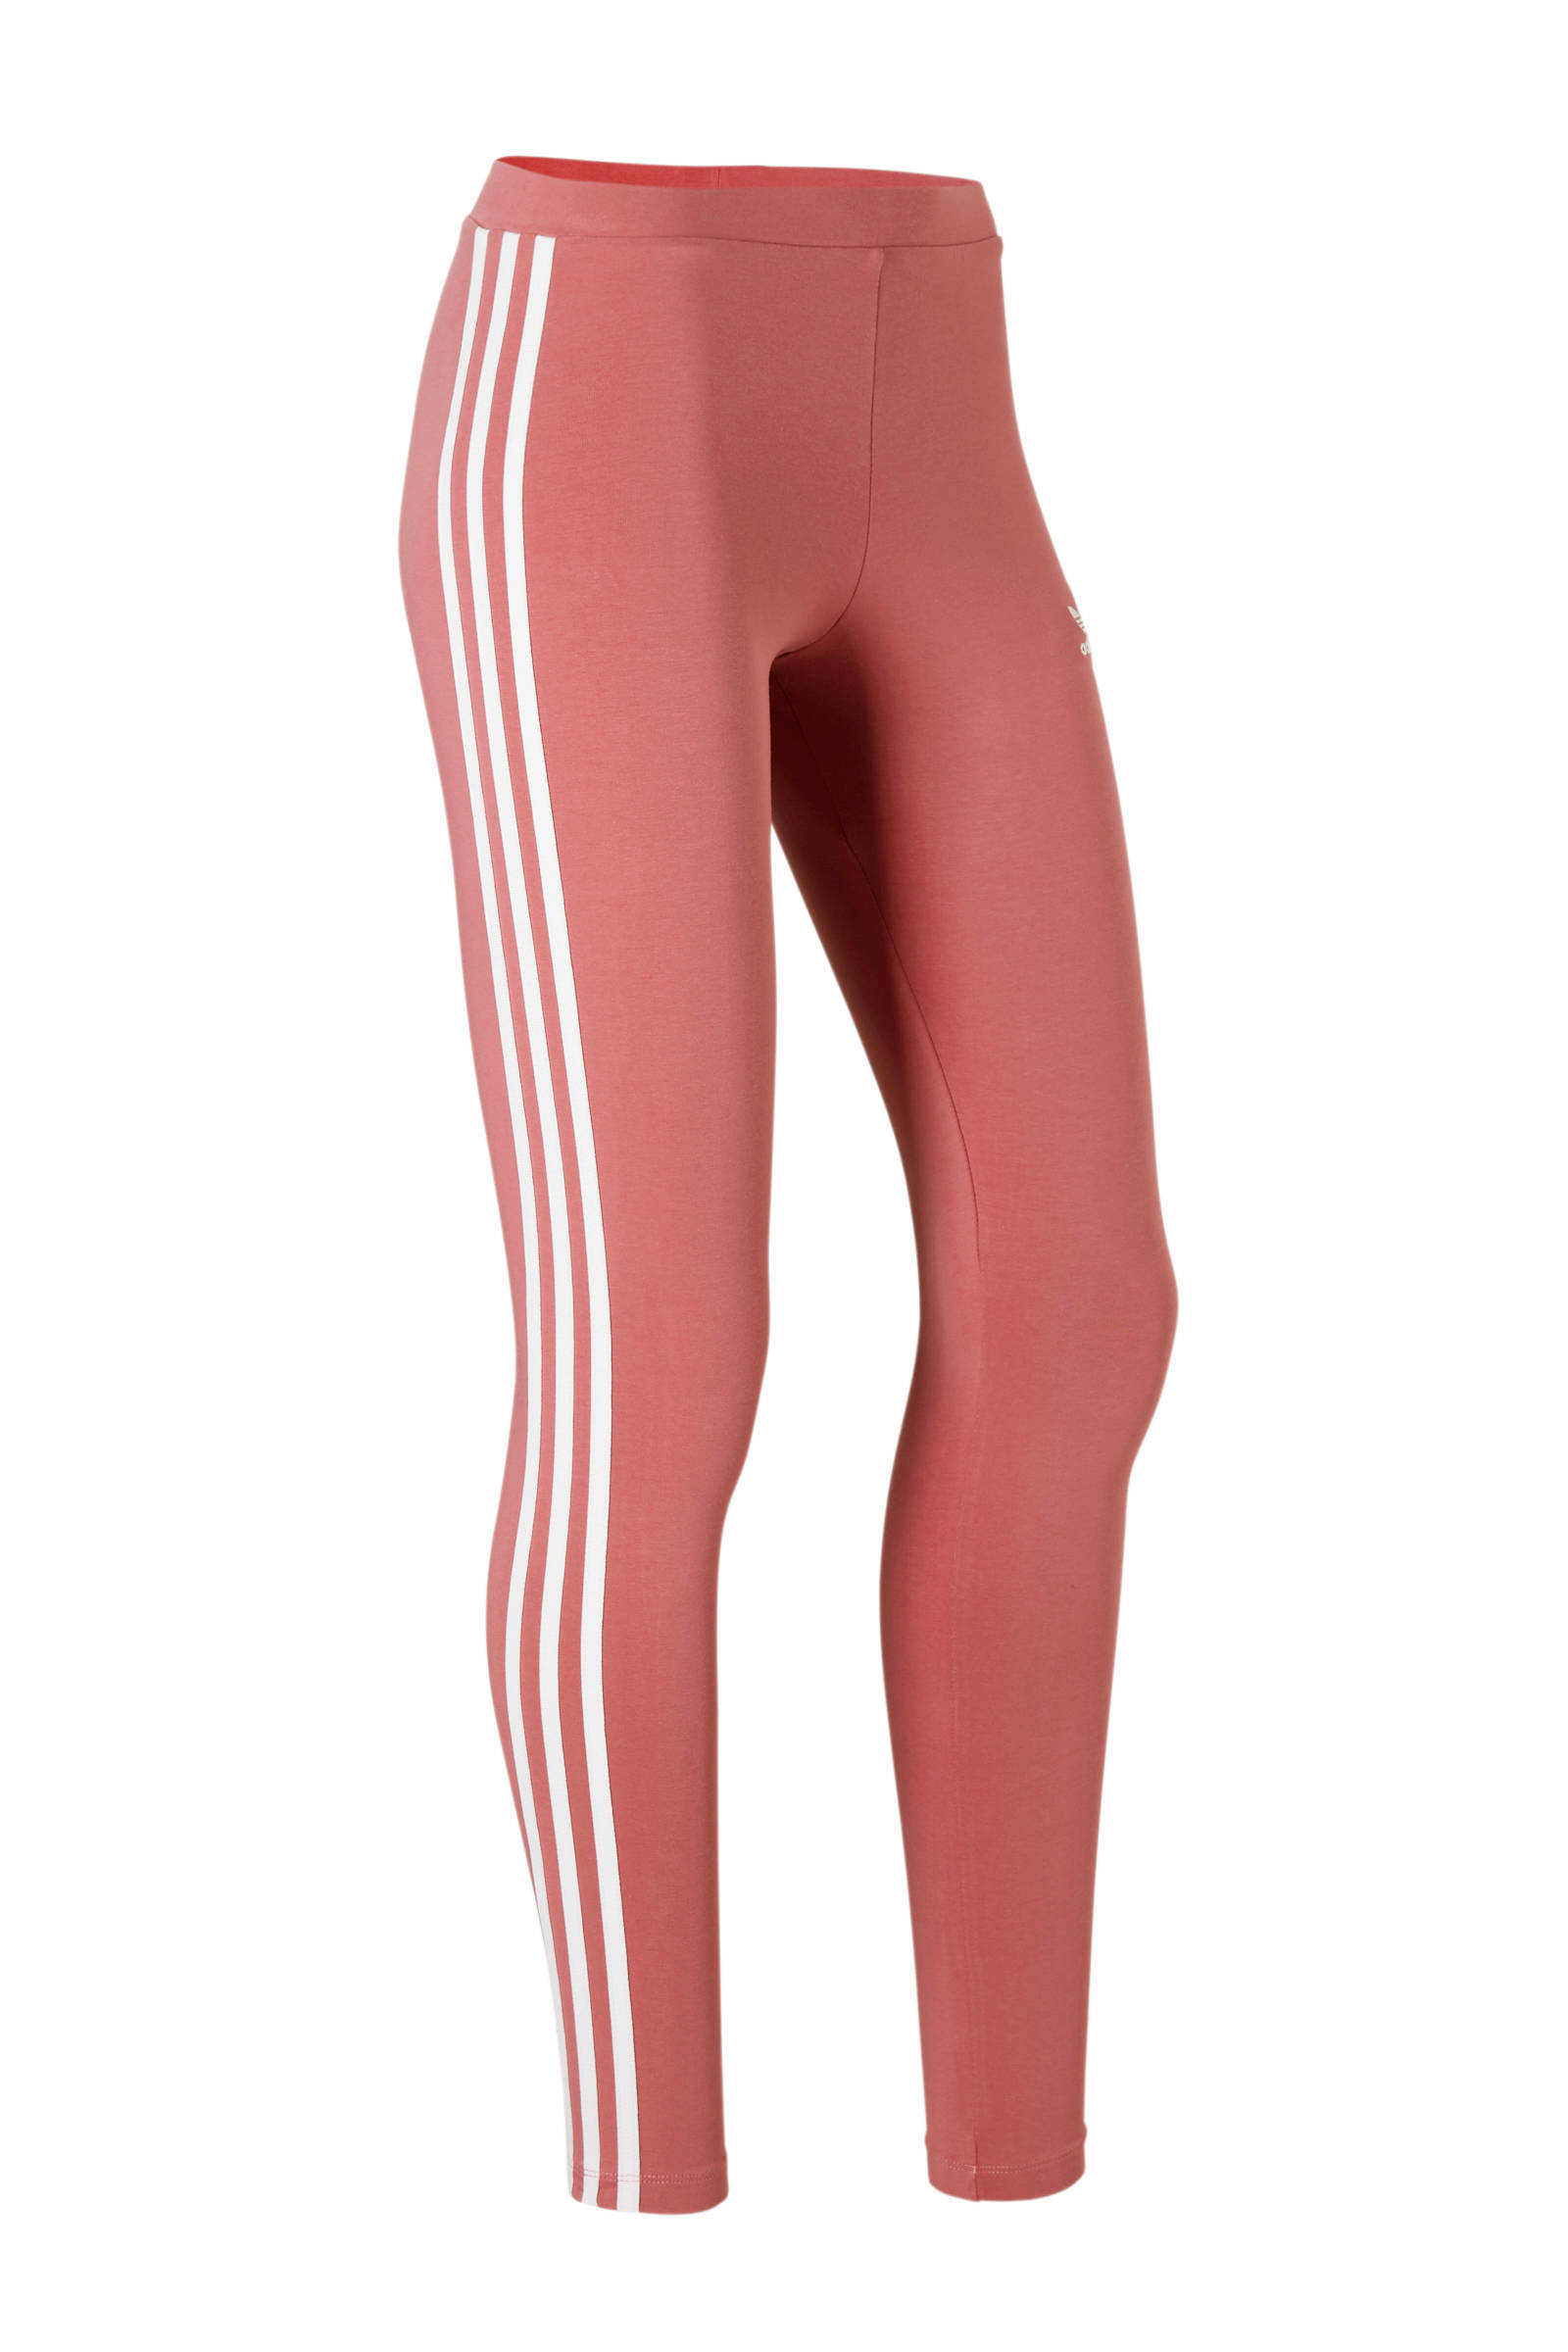 adidas trainingspak legging